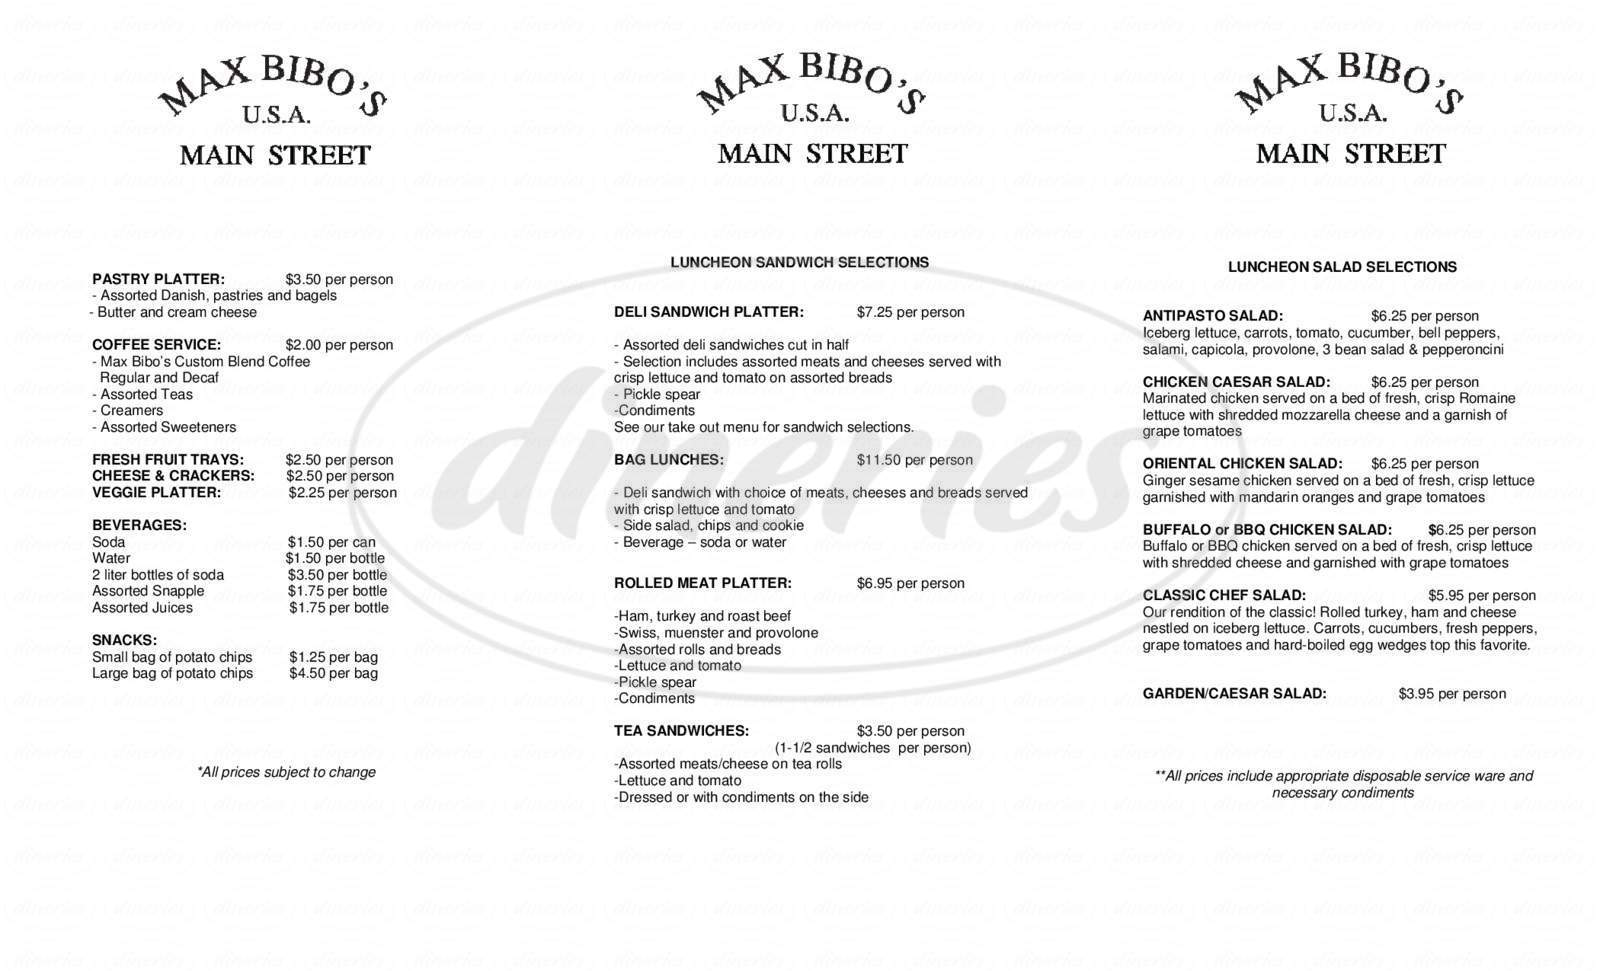 menu for Max Bibo's